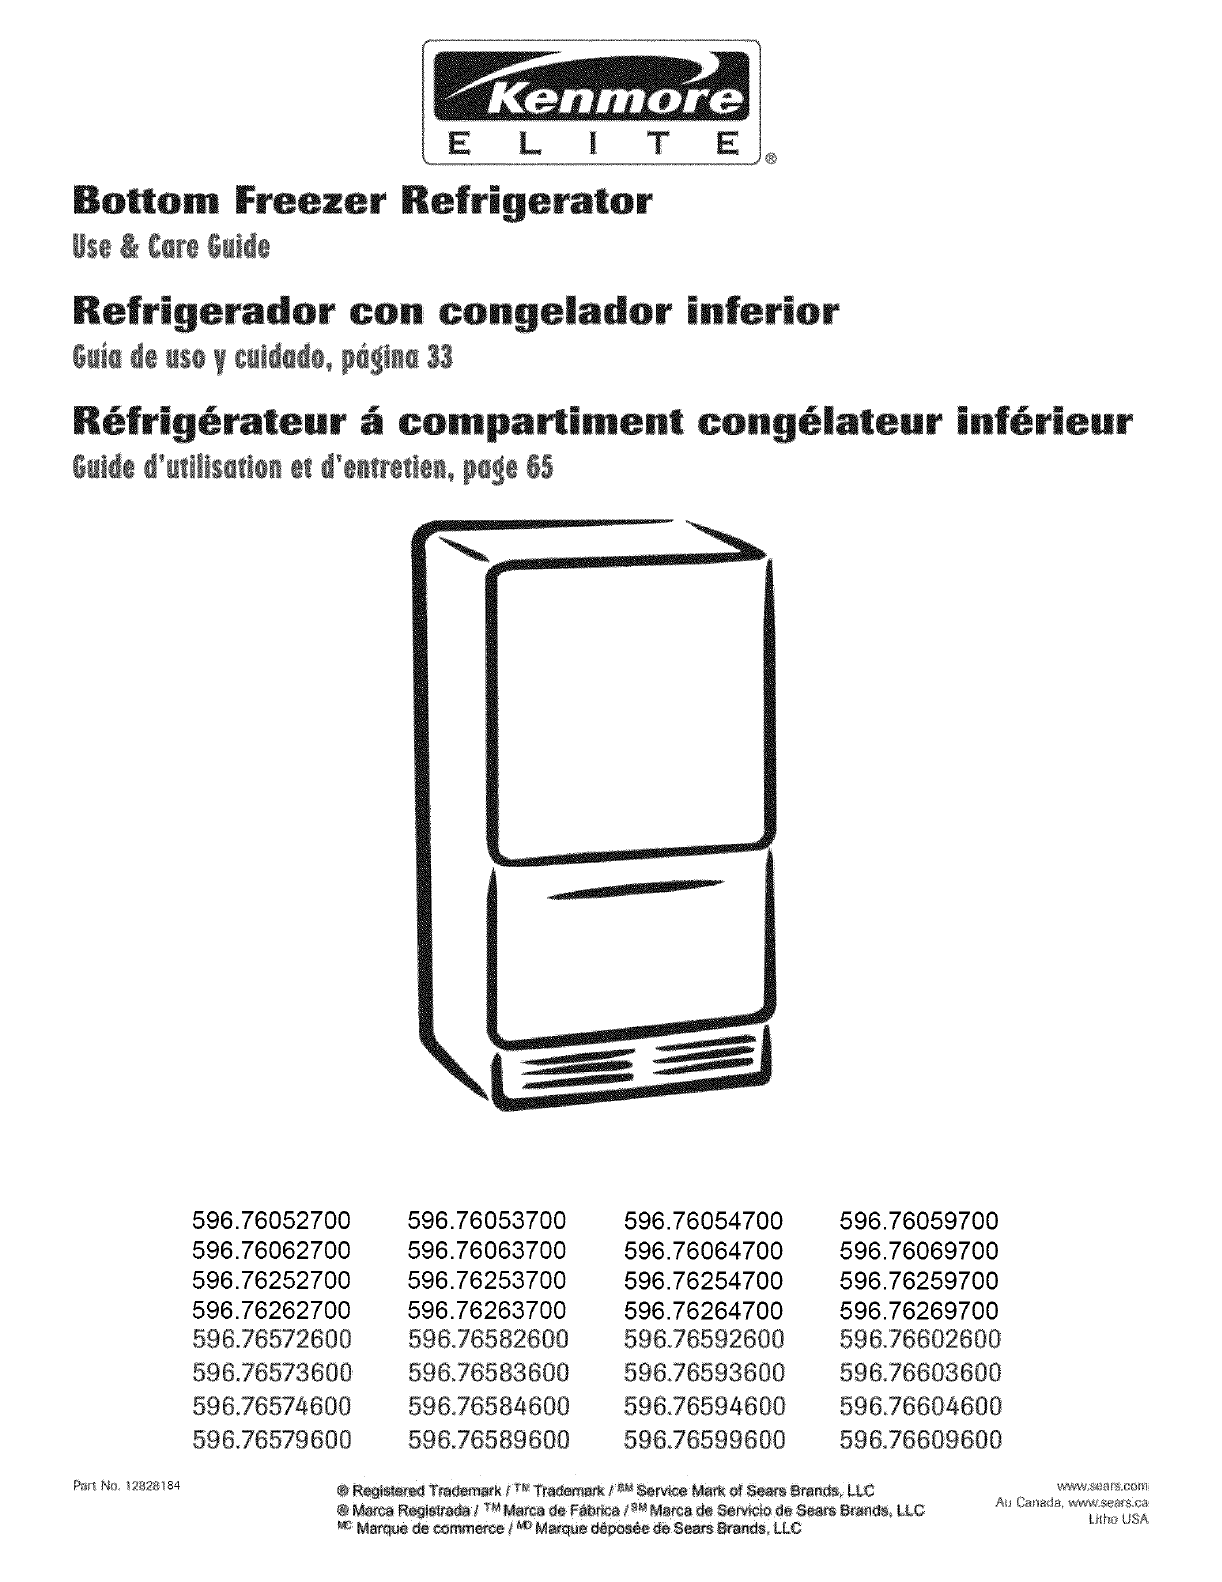 Sears Refrigerators Kenmore Elite Refrigerators: Kenmore Refrigerator Manual